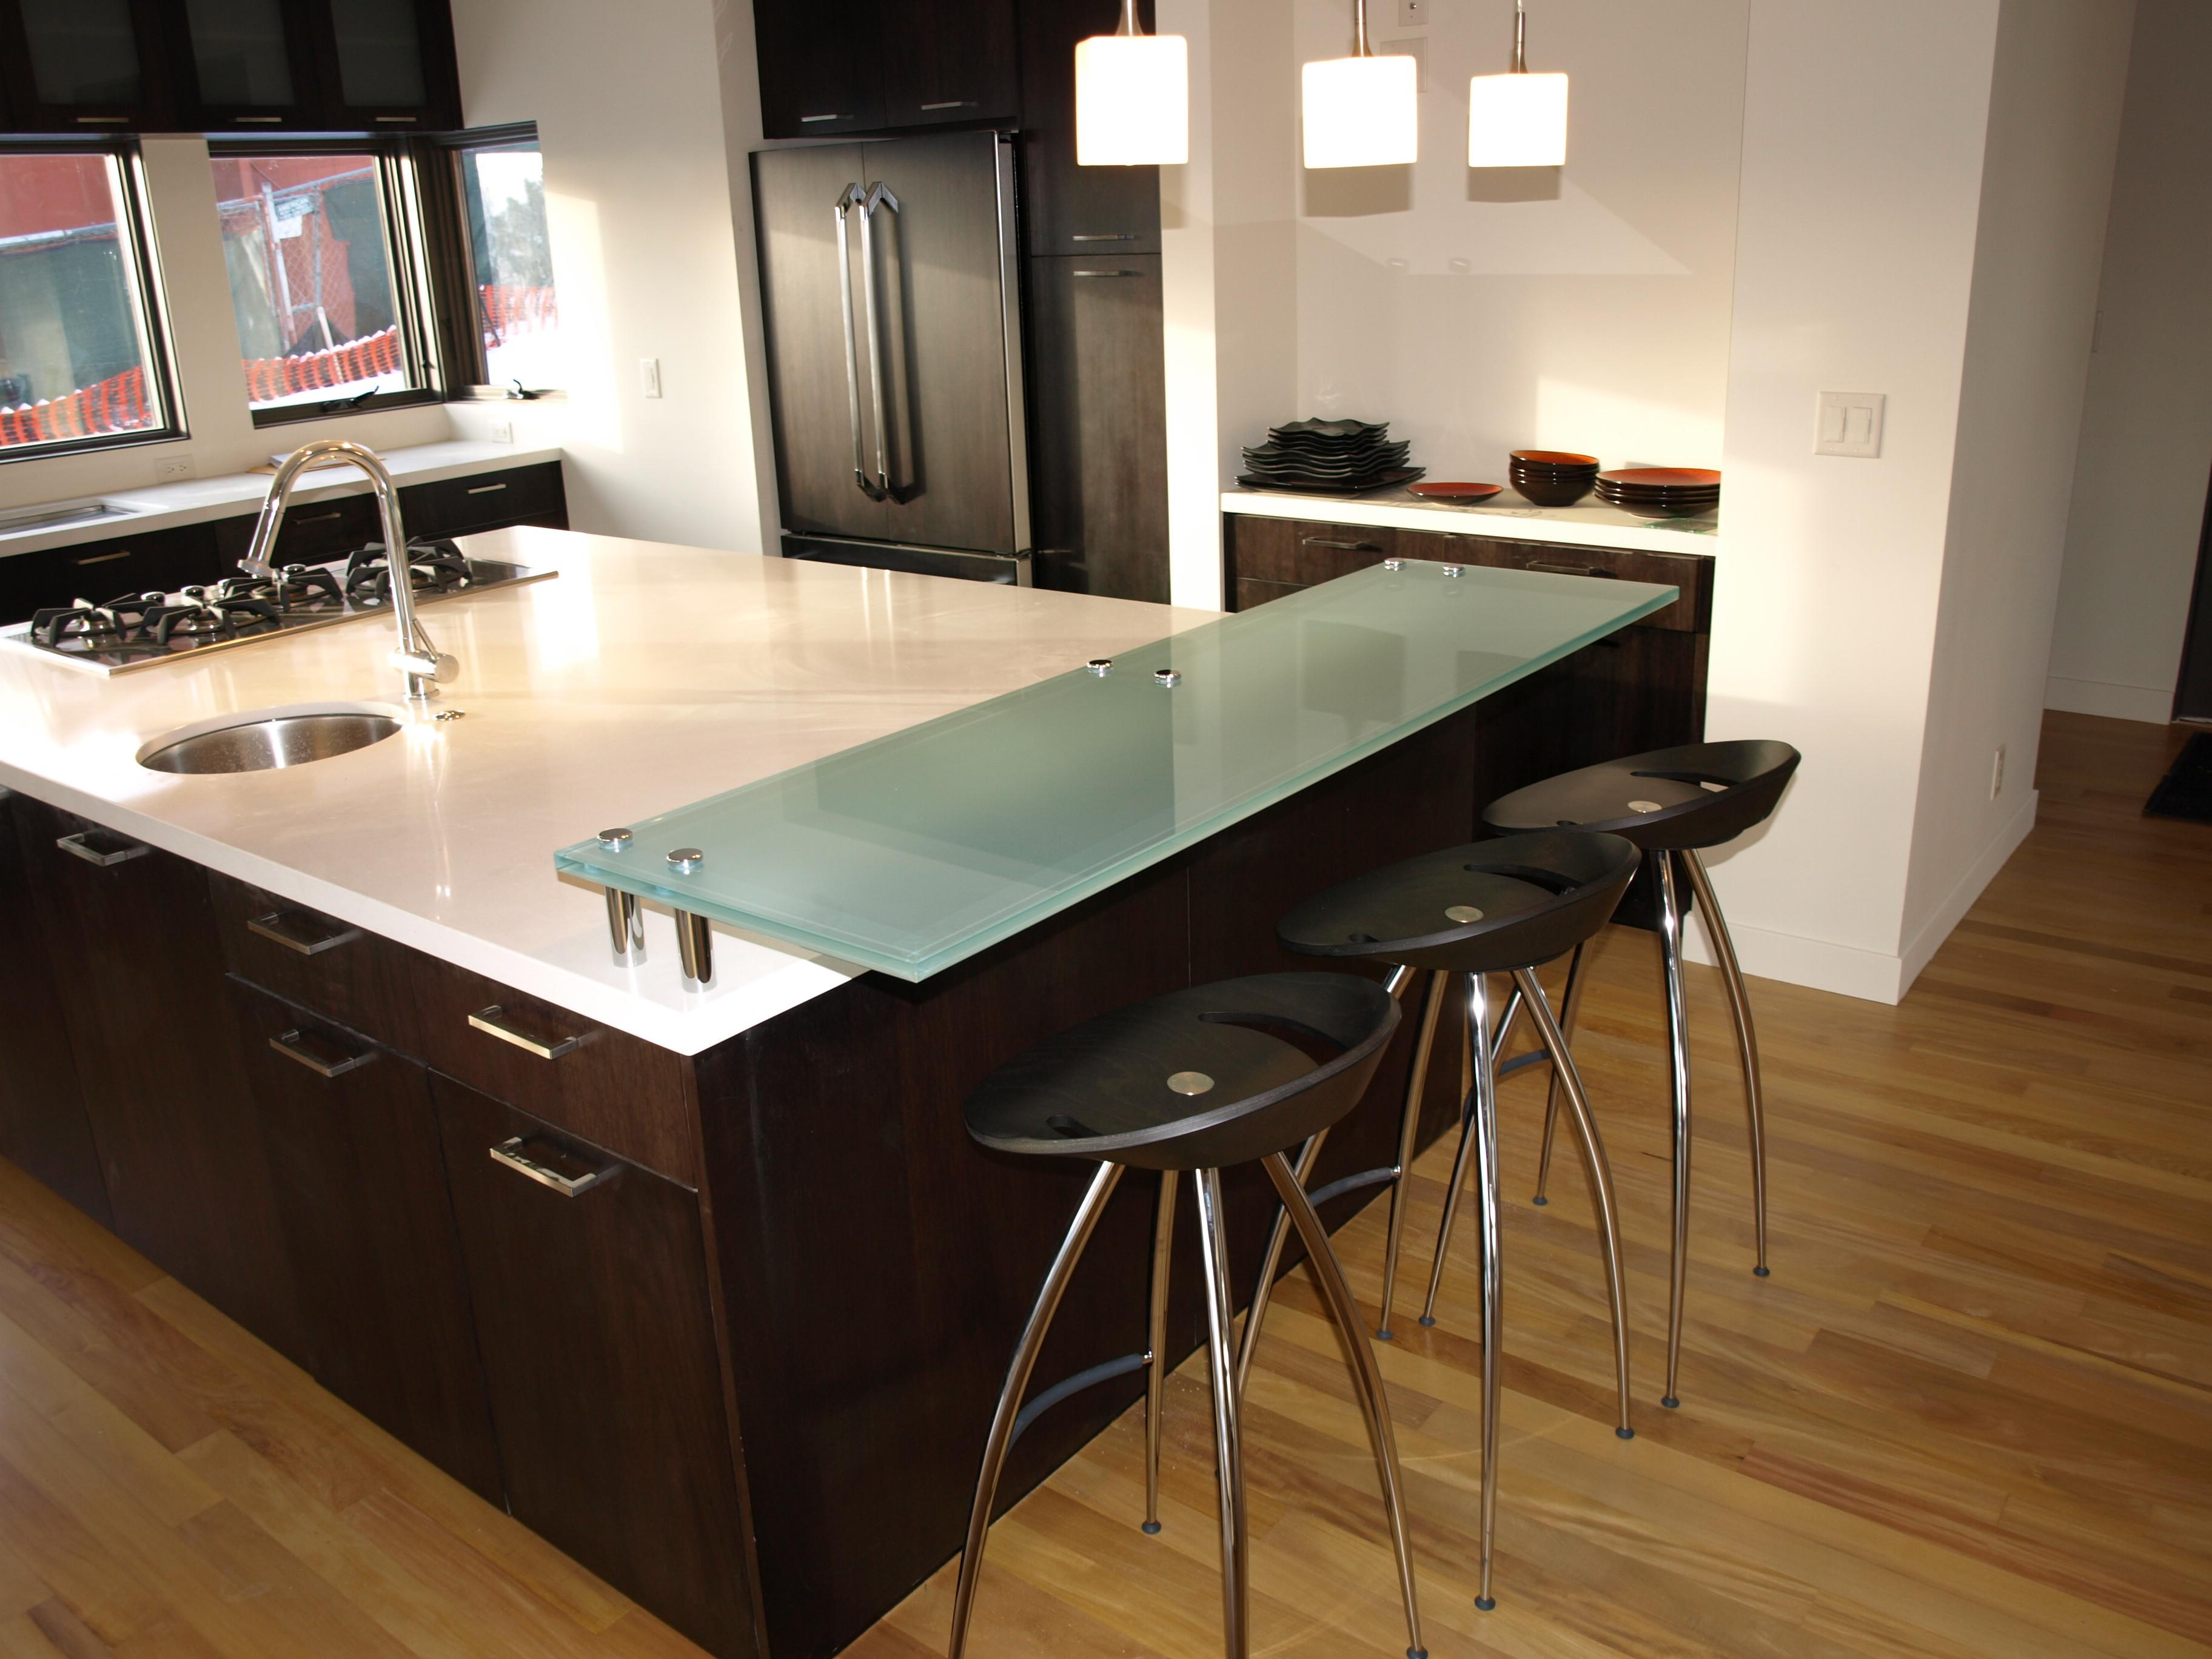 Glass Bar Top Raised Plain Countertop